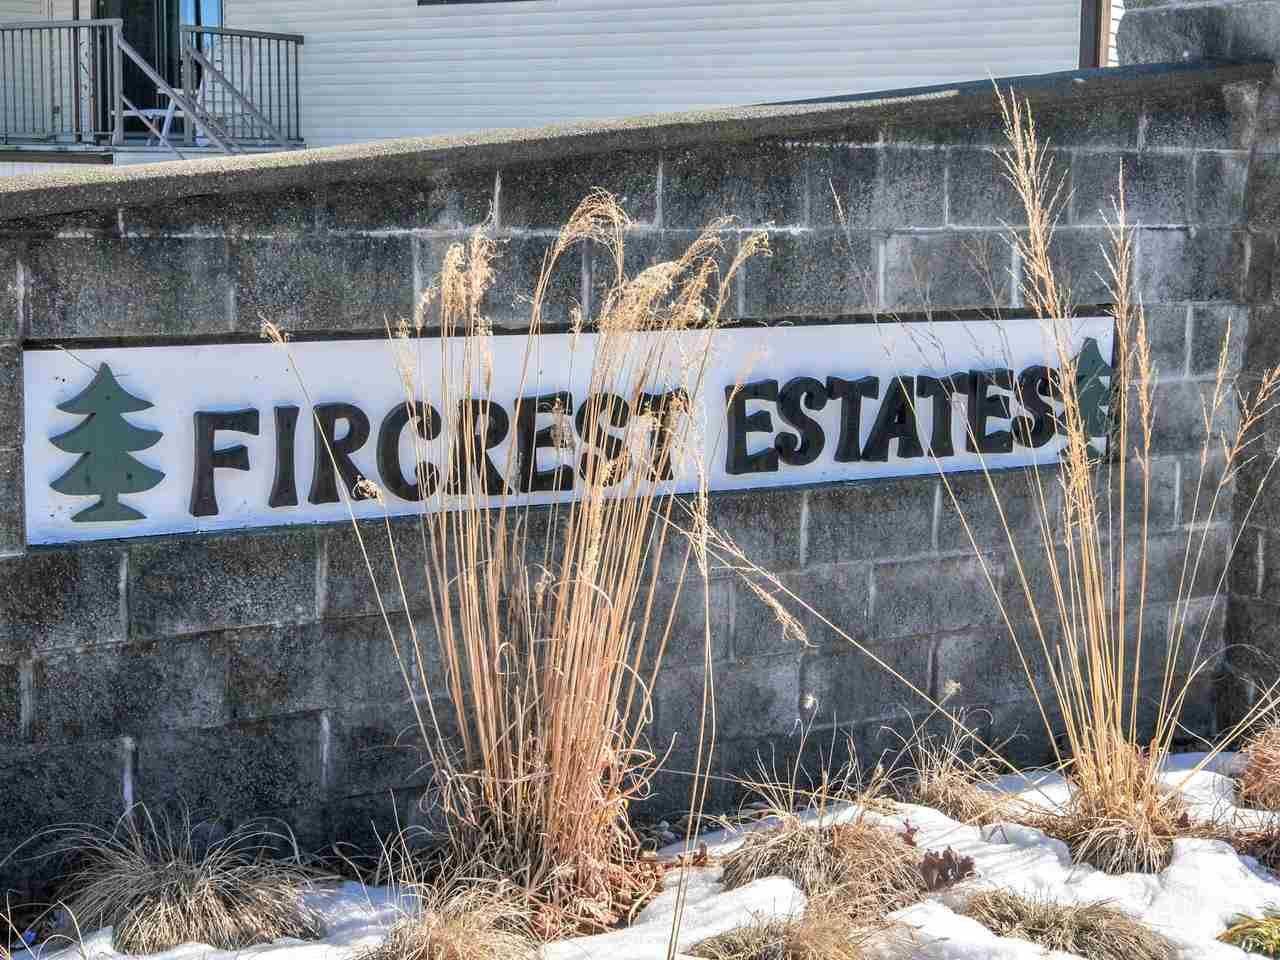 Exceptionally well maintained upper , corner unit in sought after Fir Crest Estates! Sunny & bright location w/ 230 sqft of large covered decks, one for the BBQ & one solarium. Updates include laminate flooring, new Kenmore fridge, water filter system and Kenmore stacking washer/dryer. Spacious master bedroom has a nice size walk in closet & the den has been converted to a 2nd bedroom with built in Murphy bed and cabinets. Well run highly sought after 55+ complex with reasonable strata fee, incl. heat, water, hydro & gardening. Clubhouse w/full kitchen can be reserved for parties, games room, library, workshop & car wash area. Covered carport & visitor parking, RV parking option($), convenient location to shopping and transit.